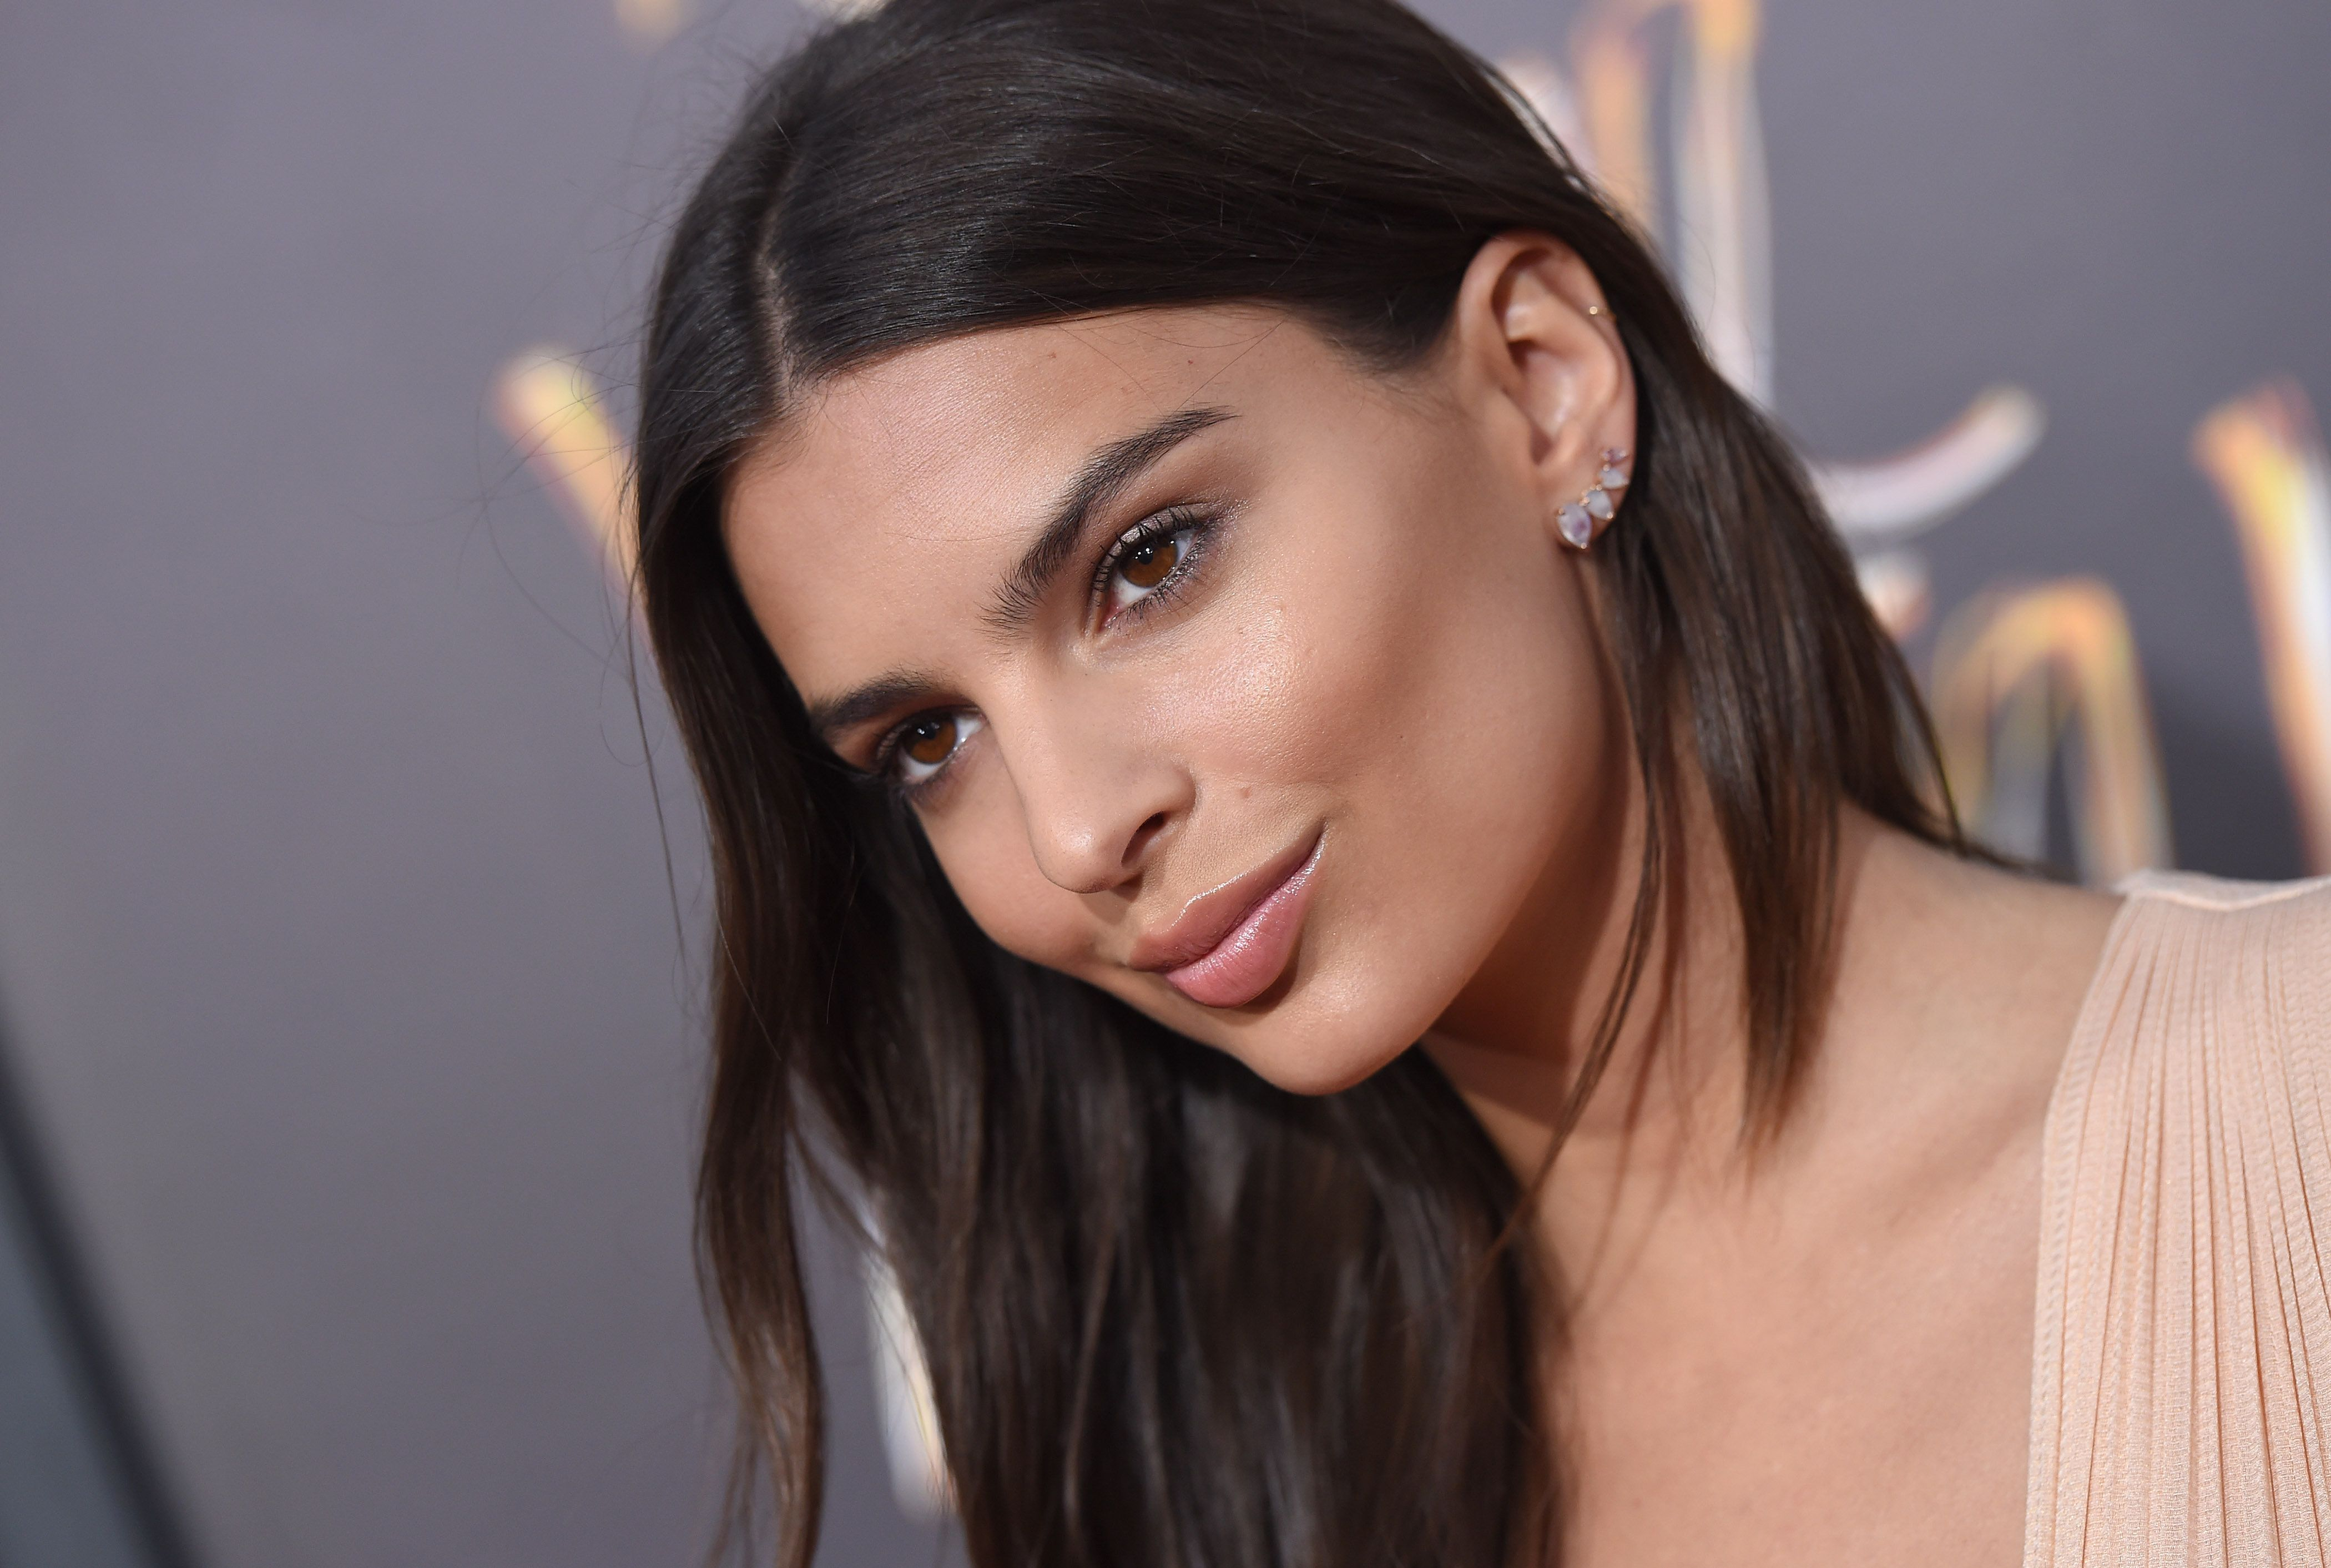 HOLLYWOOD, CA - AUGUST 20:  Actress Emily Ratajkowski arrives at the premiere of Warner Bros. Pictures' 'We Are Your Friends' at TCL Chinese Theatre on August 20, 2015 in Hollywood, California.  (Photo by Axelle/Bauer-Griffin/FilmMagic)